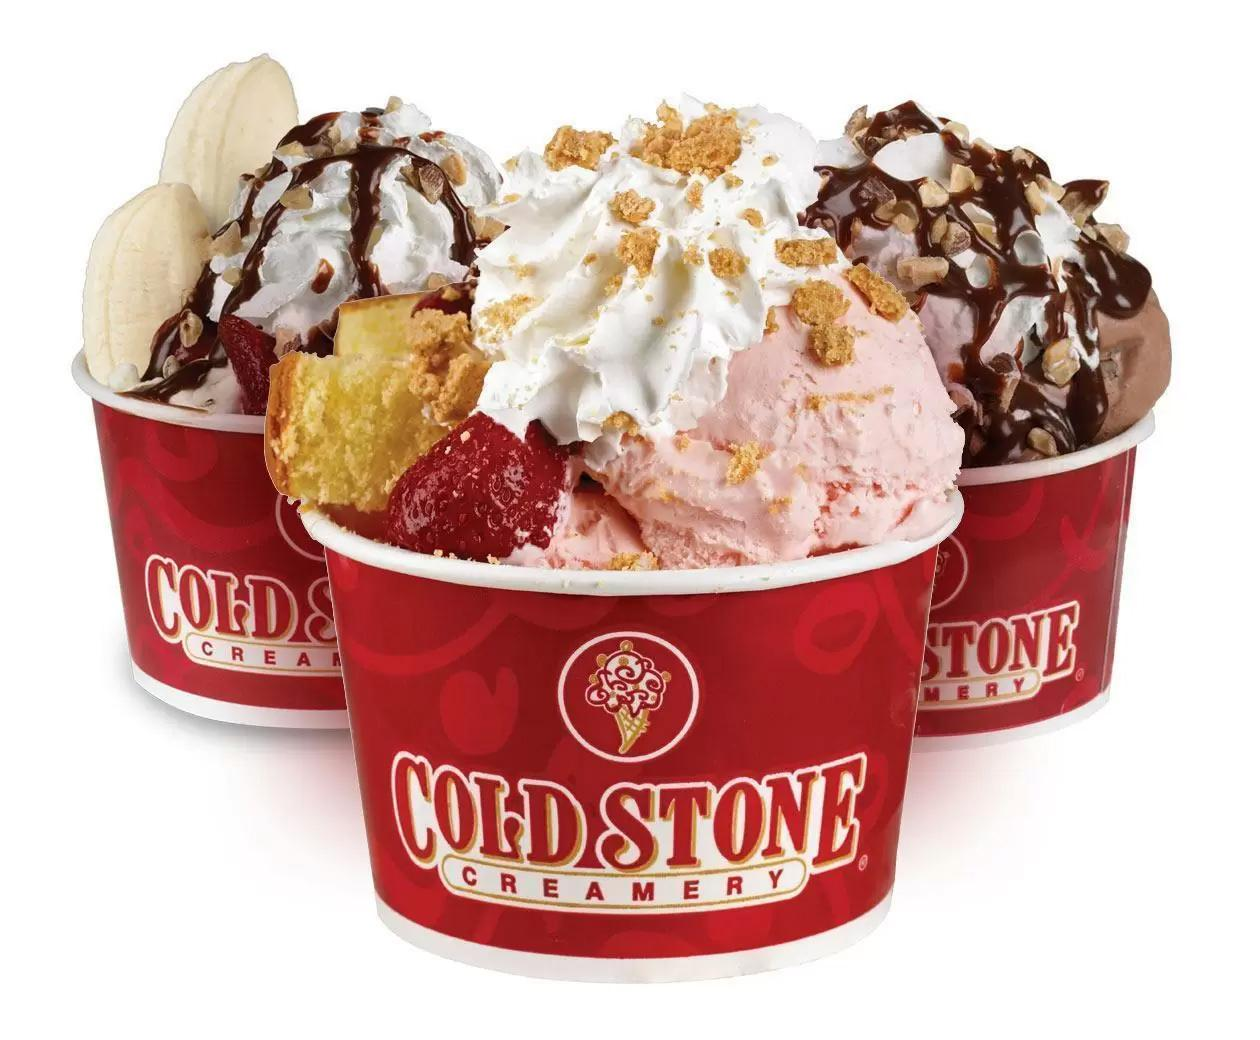 How to Get 20% Off Cold Stone Creamery Ice Cream